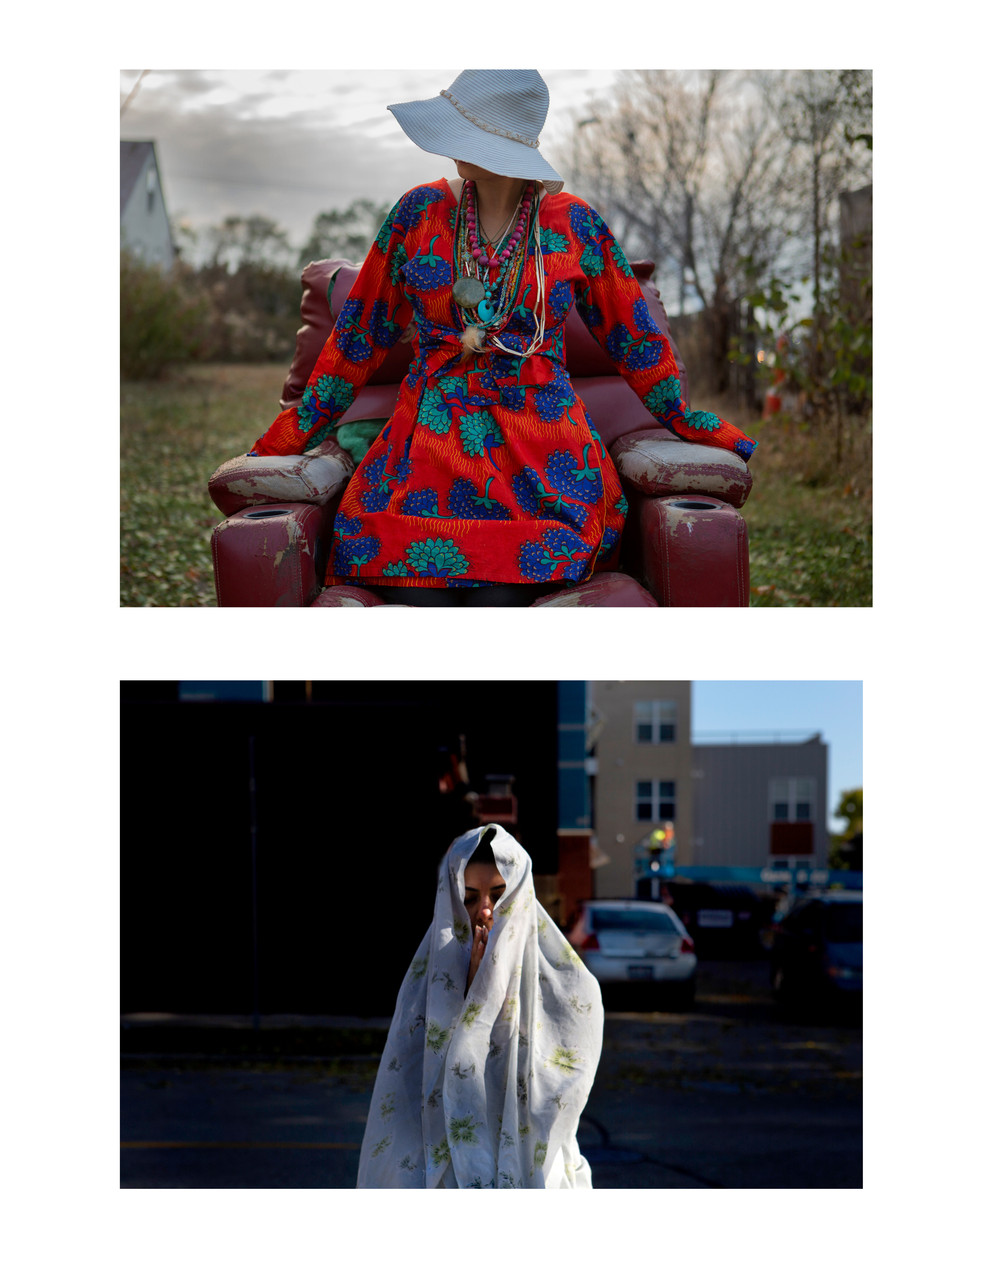 Photographs by Maryam Ladoni.